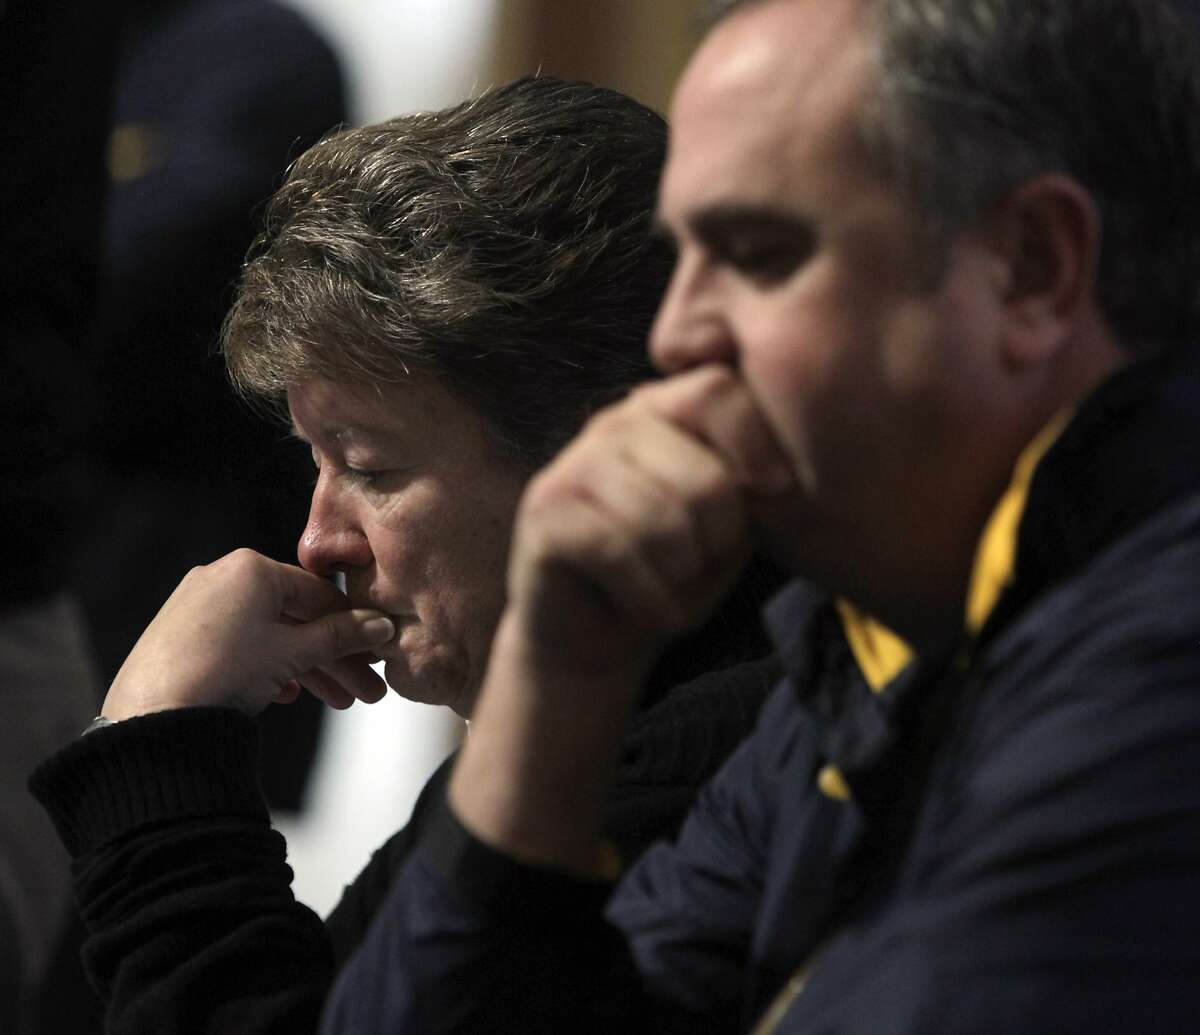 Cal athletic director Sandy Barbour and head football coach Sonny Dykes speak at a news conference to address the death of Cal Bears football defensive end Ted Agu during a team workout this morning in Berkeley, Calif. on Friday, Feb. 7, 2014.